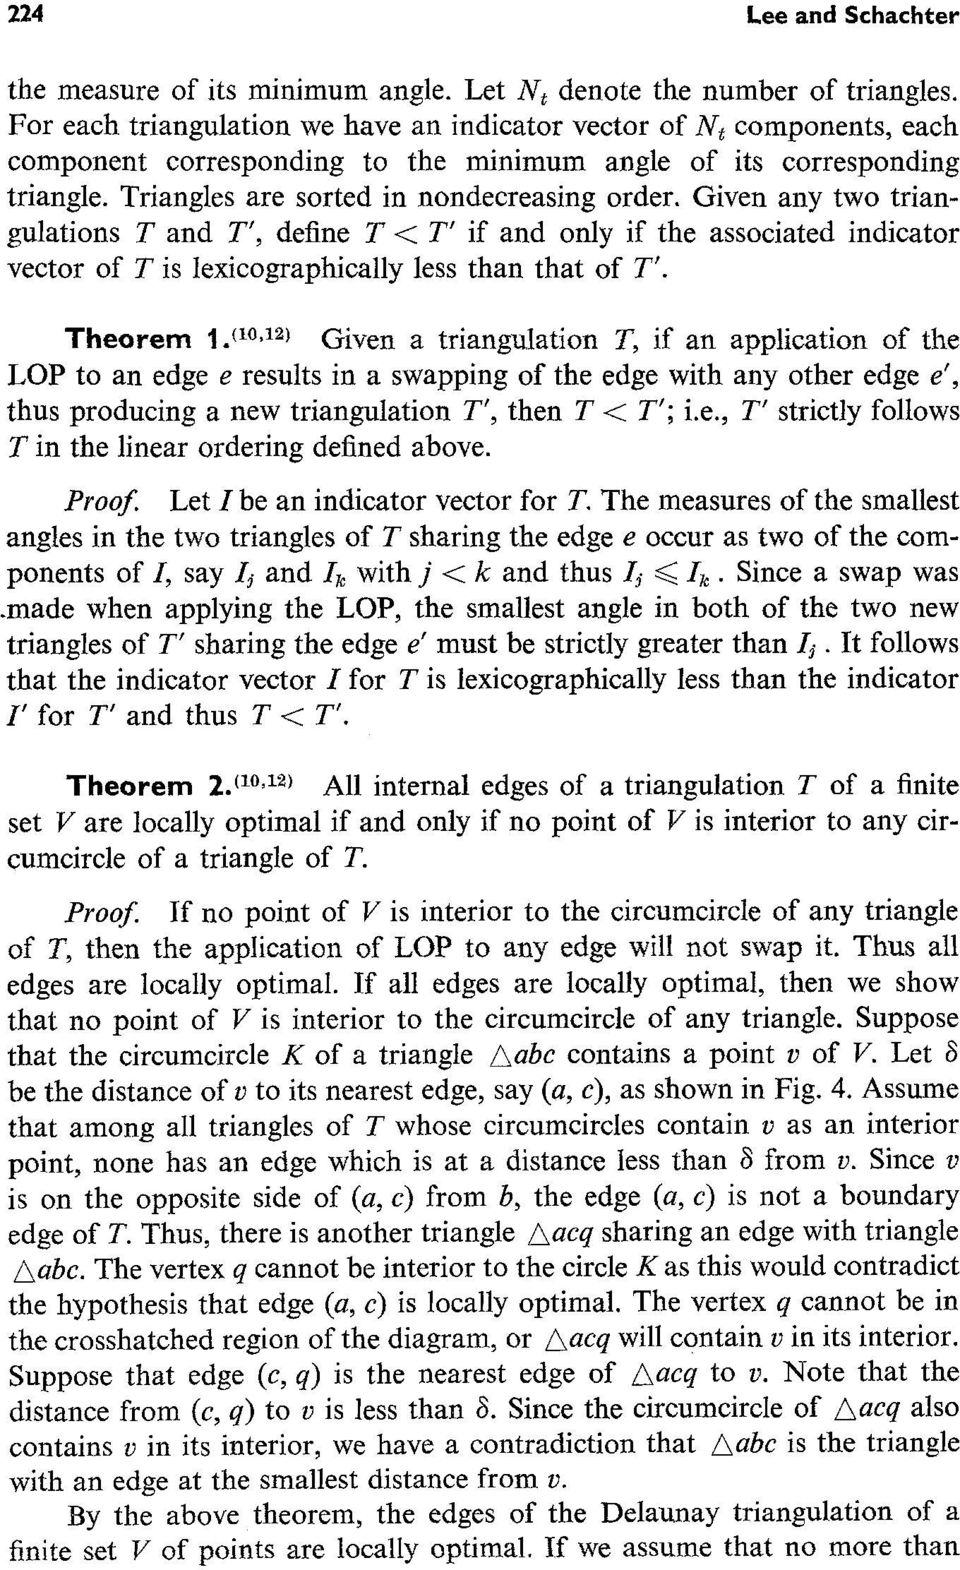 Given any two triangulations T and T', define T < T' if and only if the associated indicator vector of T is Iexicographically less than that of T'.